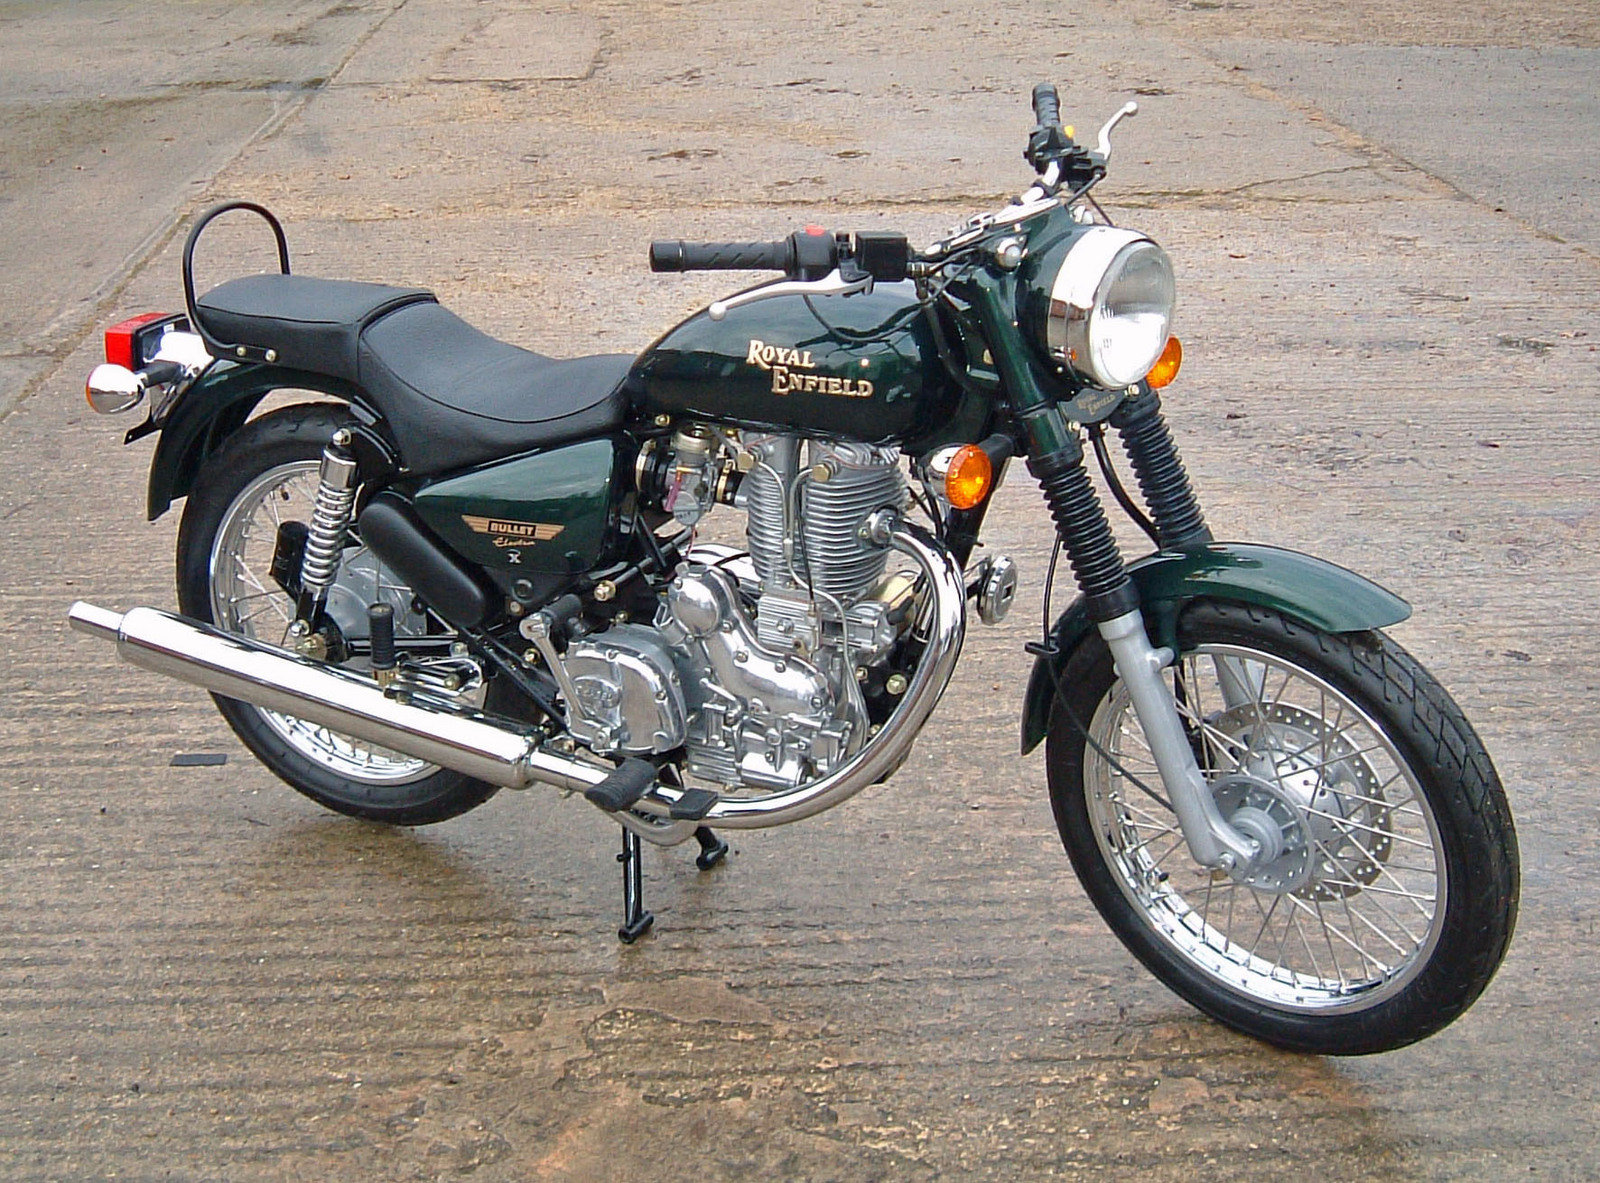 700cc Royal Enfield V Twin